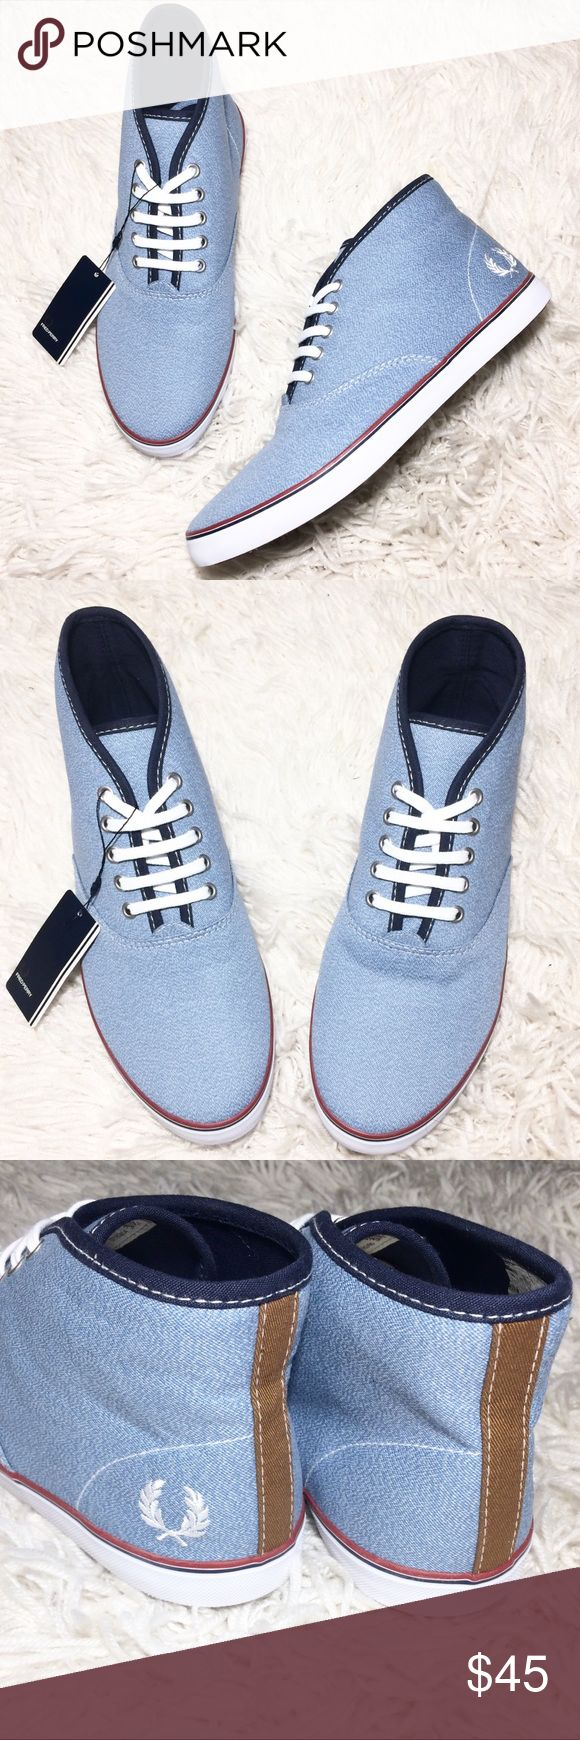 Brand NEW! Fred Perry Hightop Sneakers Size 8 Brand new Fred Perry hightop sneakers in a size 8. These lace-up sneakers are made in chambray fabric, they feature a twin tipping above the rubber soles and trademark embroidered Laurel Wreath. Fred Perry Shoes Sneakers